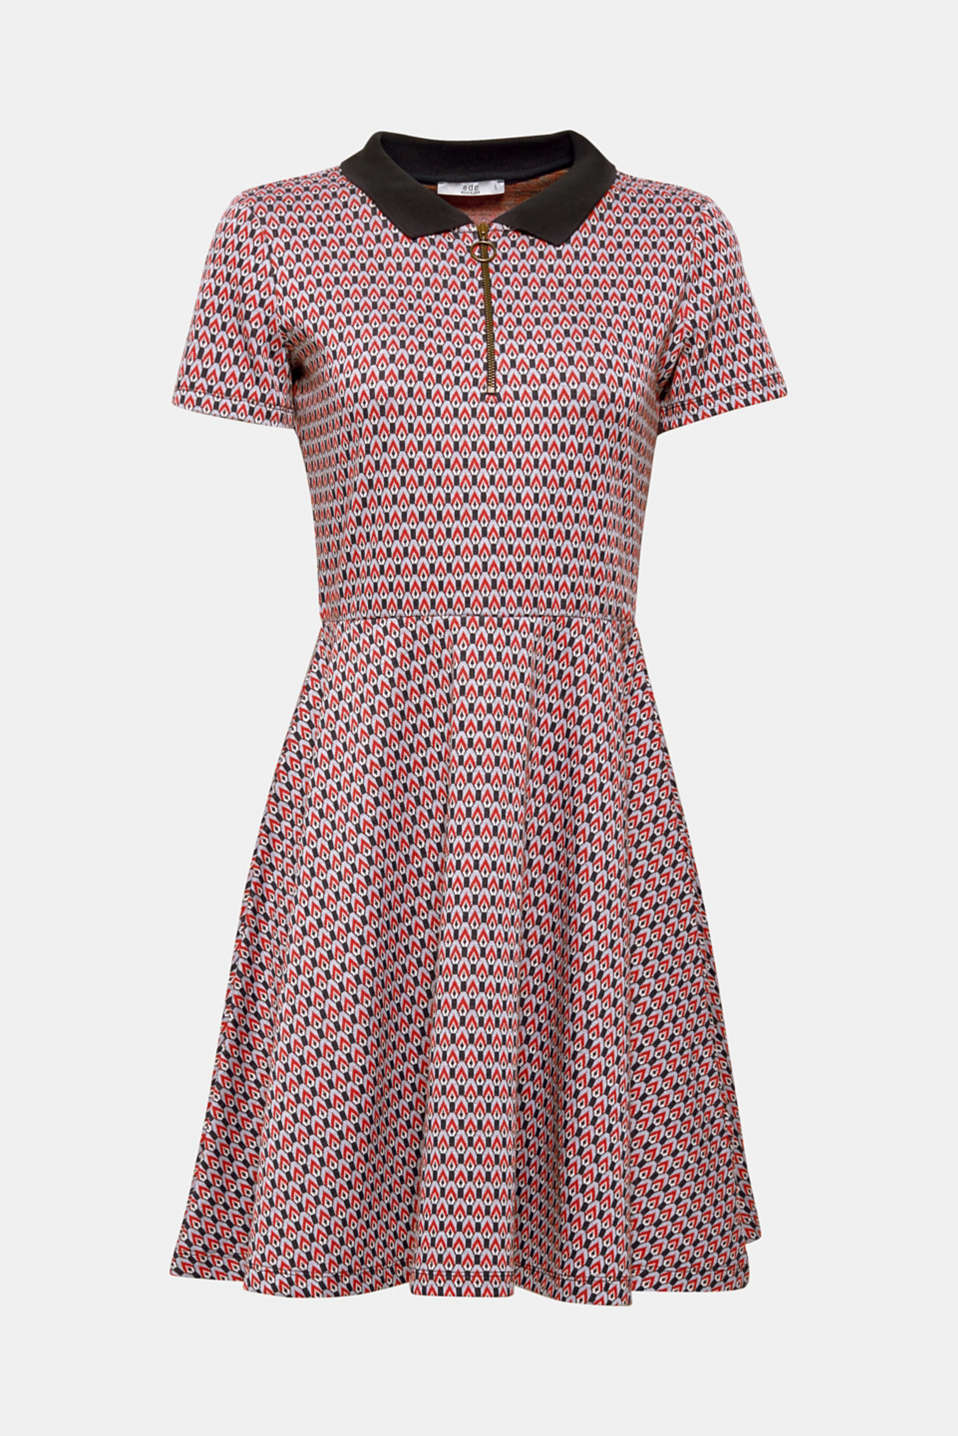 Patterned jersey dress with a polo collar, NAVY, detail image number 6